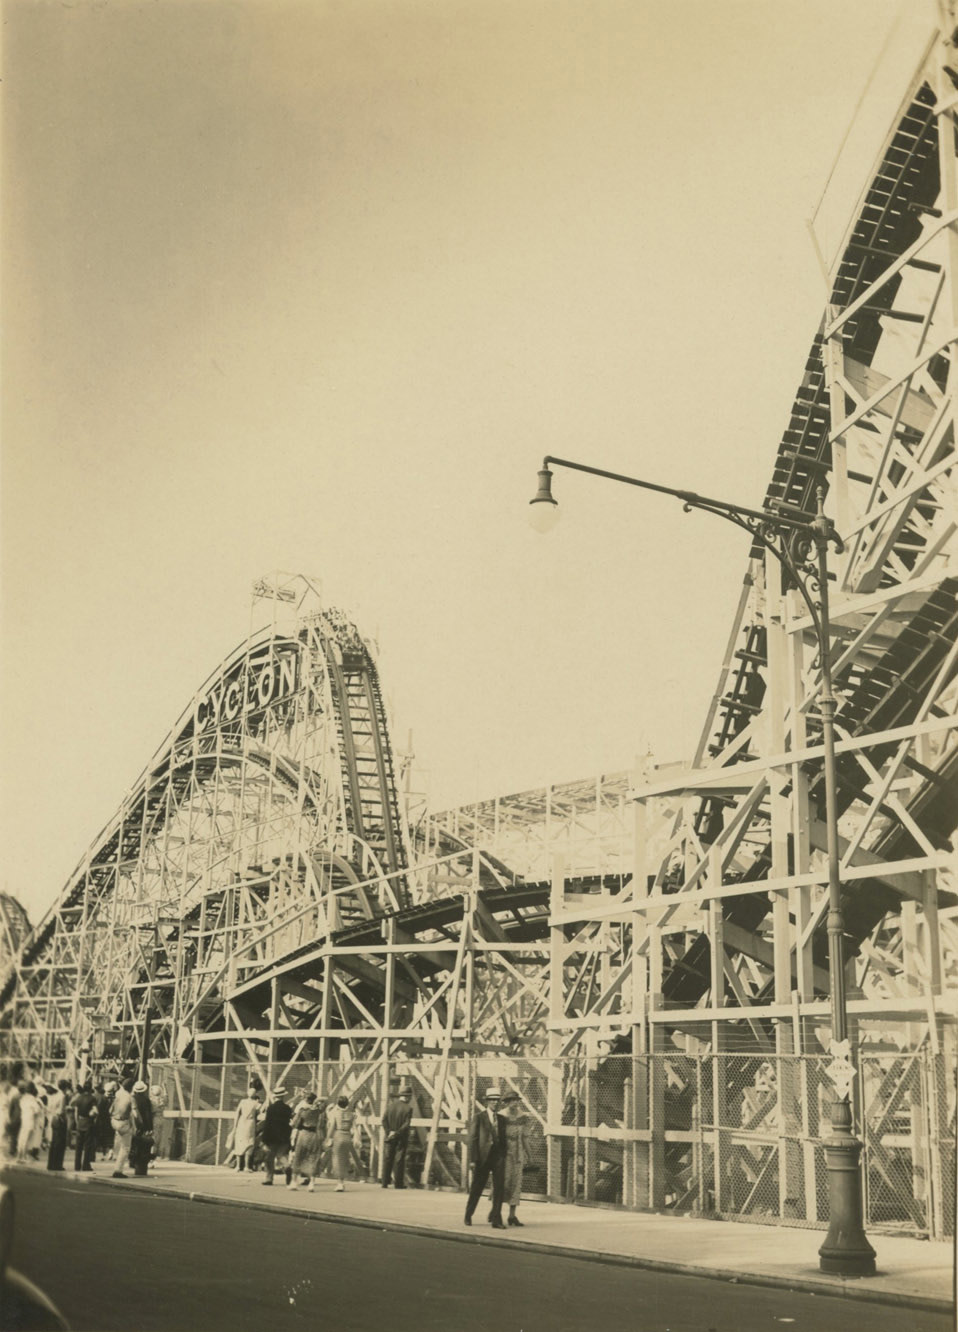 "<span class=""link fancybox-details-link""><a href=""/artists/88-alexander-artway/works/19993-alexander-artway-cyclone-ride-two-humps-coney-island-july-4-1935/"">View Detail Page</a></span><div class=""artist""><strong>Alexander Artway</strong></div> <div class=""title""><em>Cyclone Ride, two humps, Coney Island</em>, July 4, 1935</div> <div class=""signed_and_dated"">Artist stamp, in ink, au verso<br /> Printed circa 1935</div> <div class=""medium"">Gelatin silver print</div> <div class=""dimensions"">4 ½ x 3 ¼ inch (11.43 x 8.26 cm) image<br /> 5 x 3 ¾ inch (12.70 x 9.53 cm) paper</div> <div class=""edition_details""></div>"